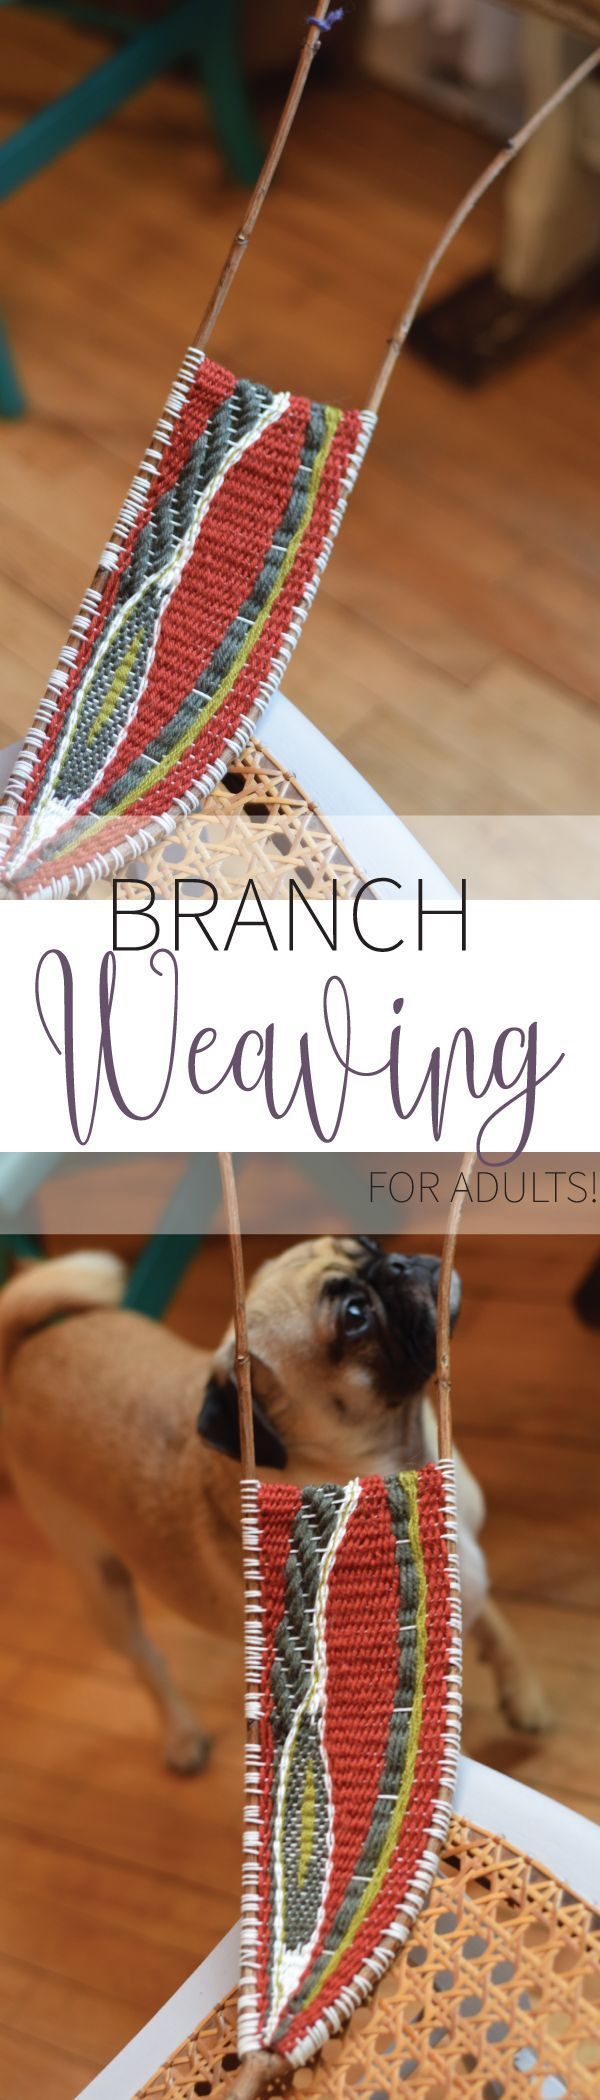 Learn how to weave a branch. Yes, it's a thing! Branch weaving is THE new craft to learn (for adults and kids). We offer detailed instructions with photographs. No previous experience needed!